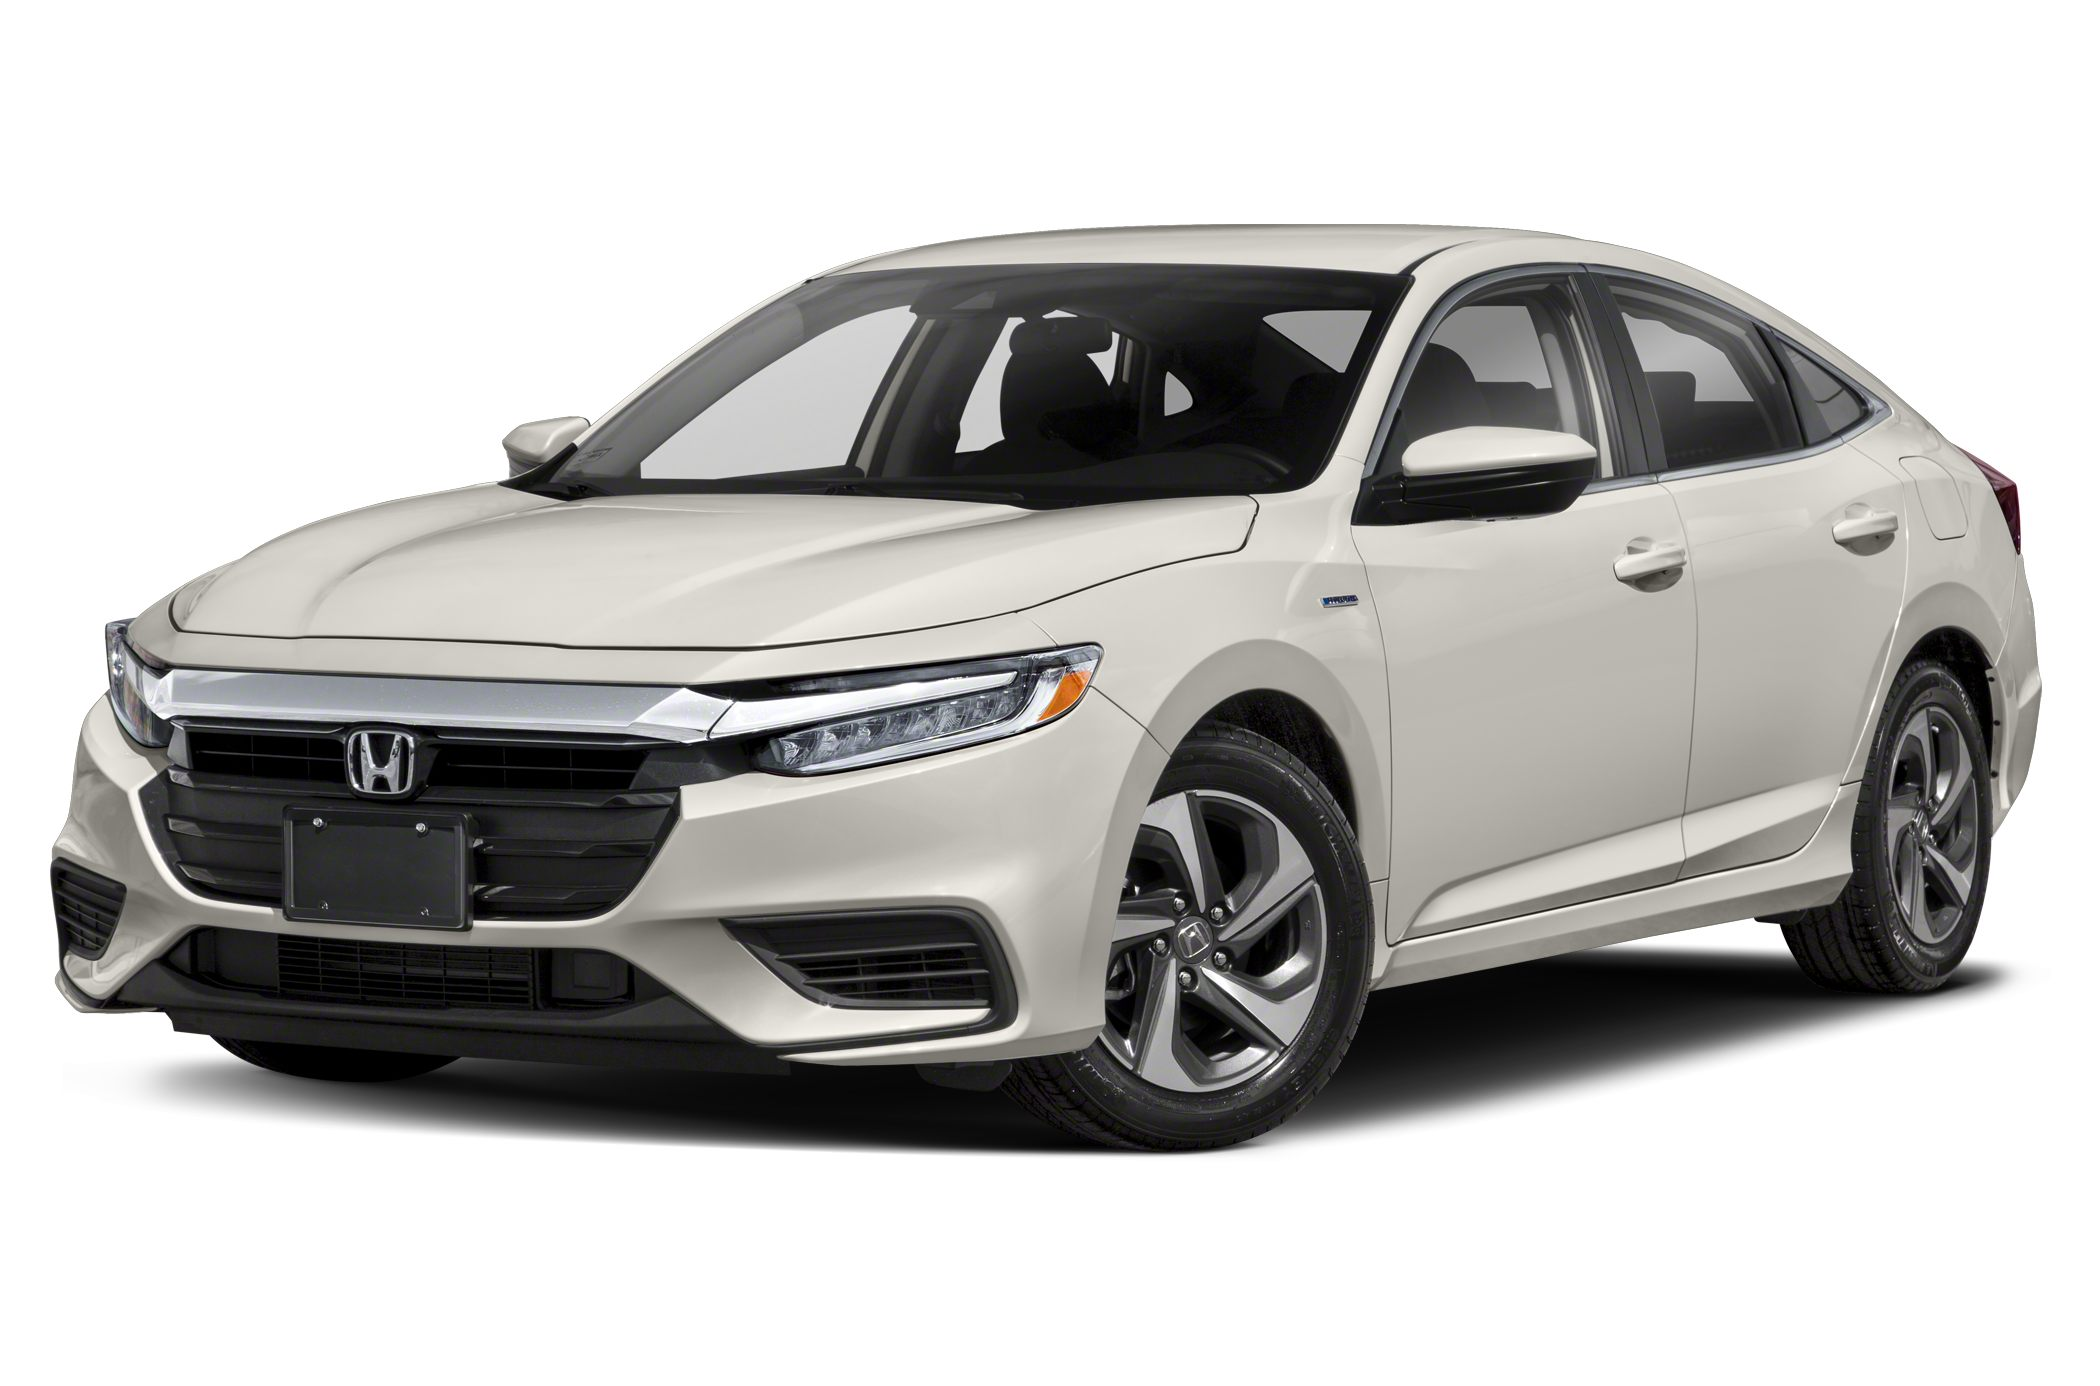 2019 Honda Insight Features, Models and Prices - URcartips